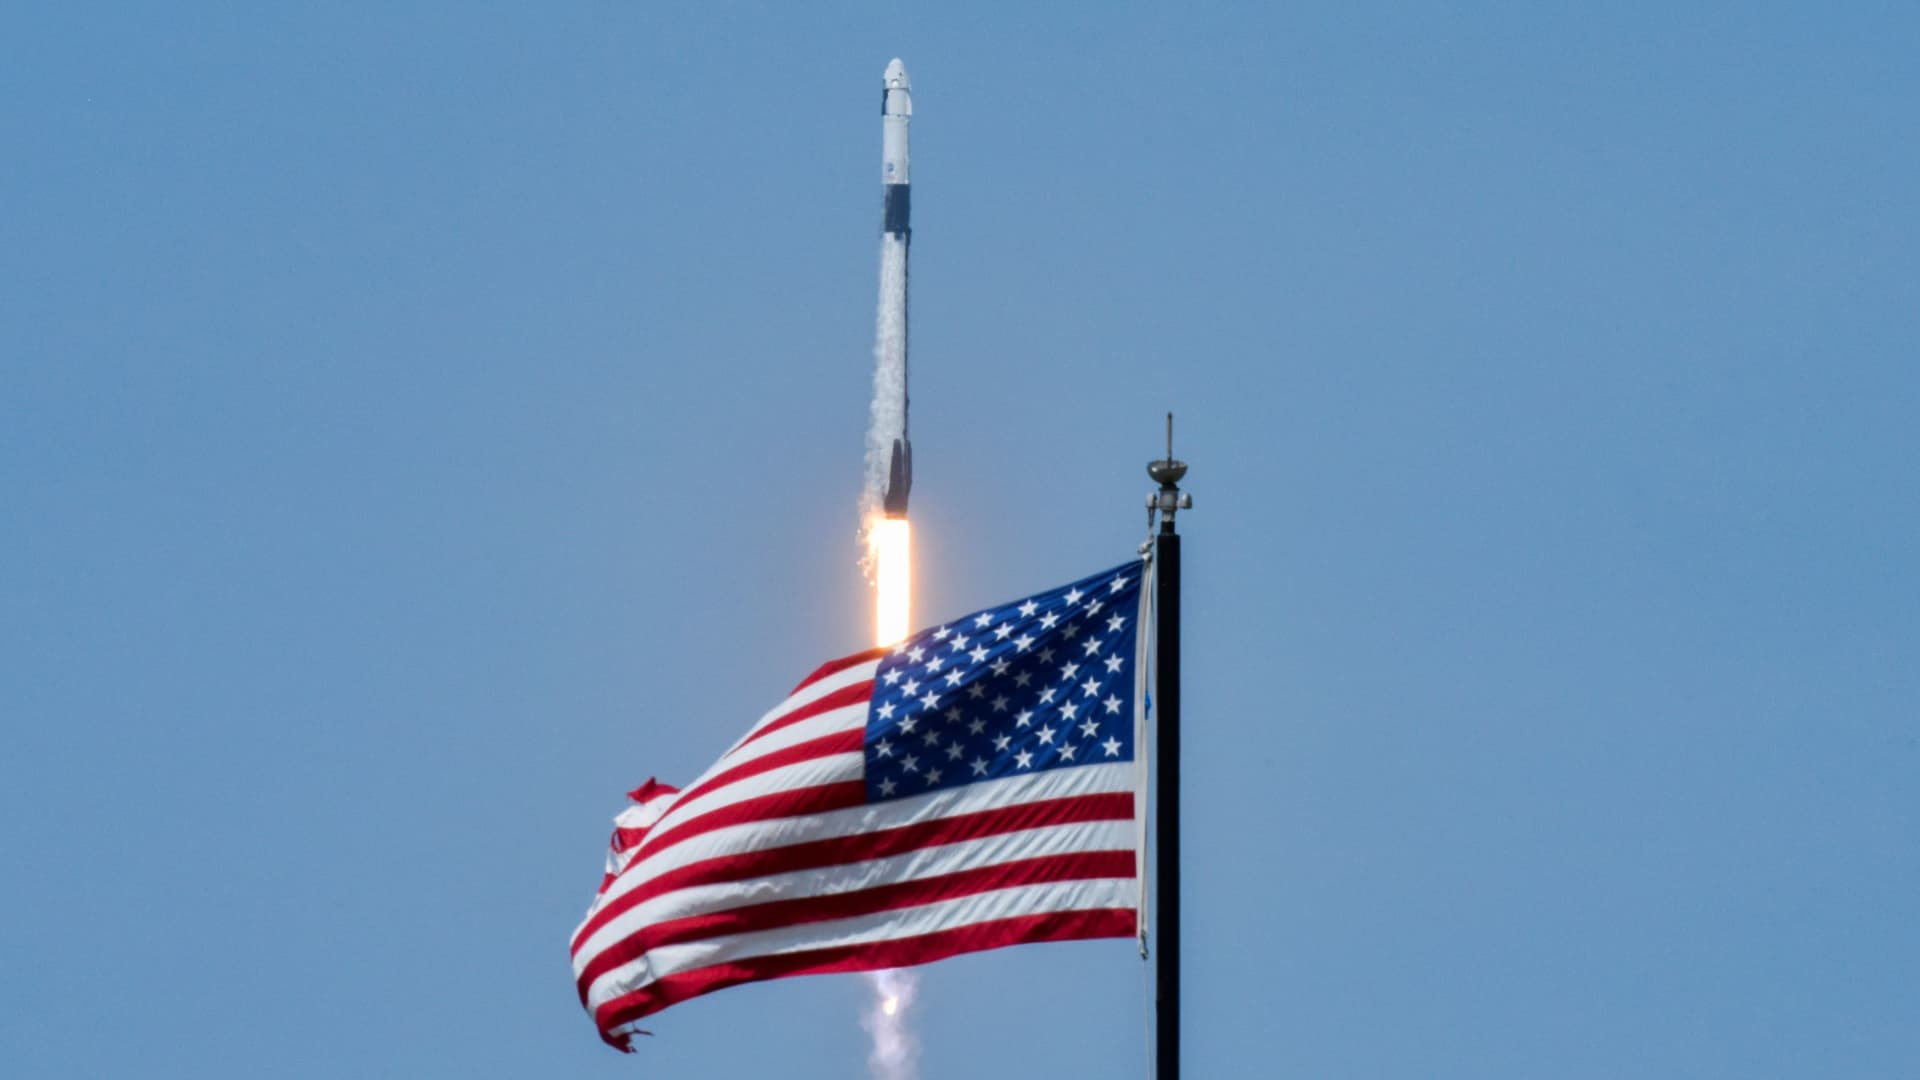 An American flag is seen as SpaceX Falcon 9 rocket and Crew Dragon spacecraft carrying NASA astronauts Douglas Hurley and Robert Behnken lifts off during NASA's SpaceX Demo-2 mission to the International Space Station from NASA's Kennedy Space Center in Cape Canaveral, Florida, U.S. May 30, 2020.